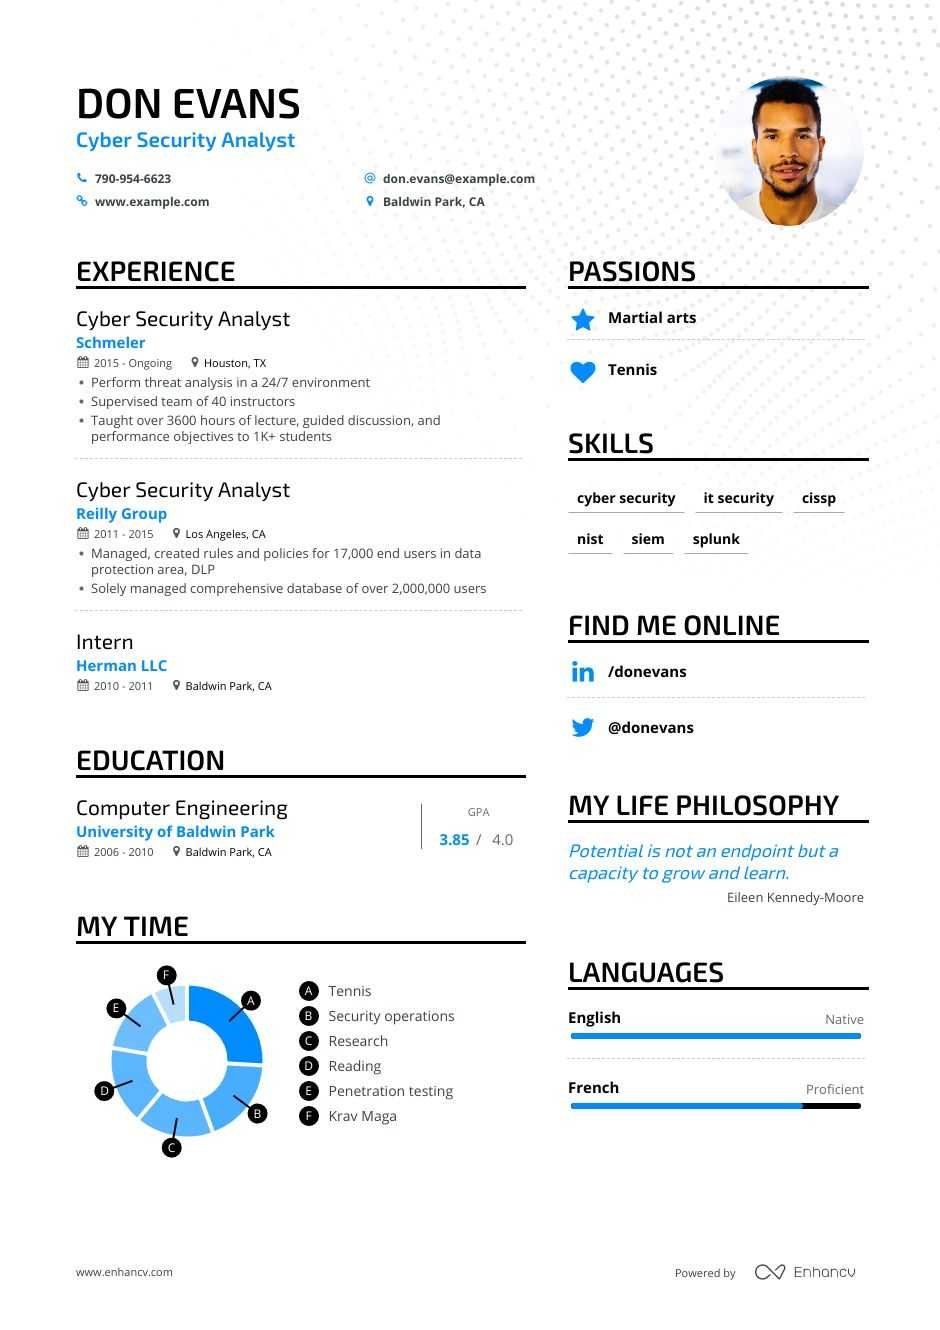 cyber security analyst resume examples guide pro tips enhancv unit coordinator sample Resume Security Analyst Resume